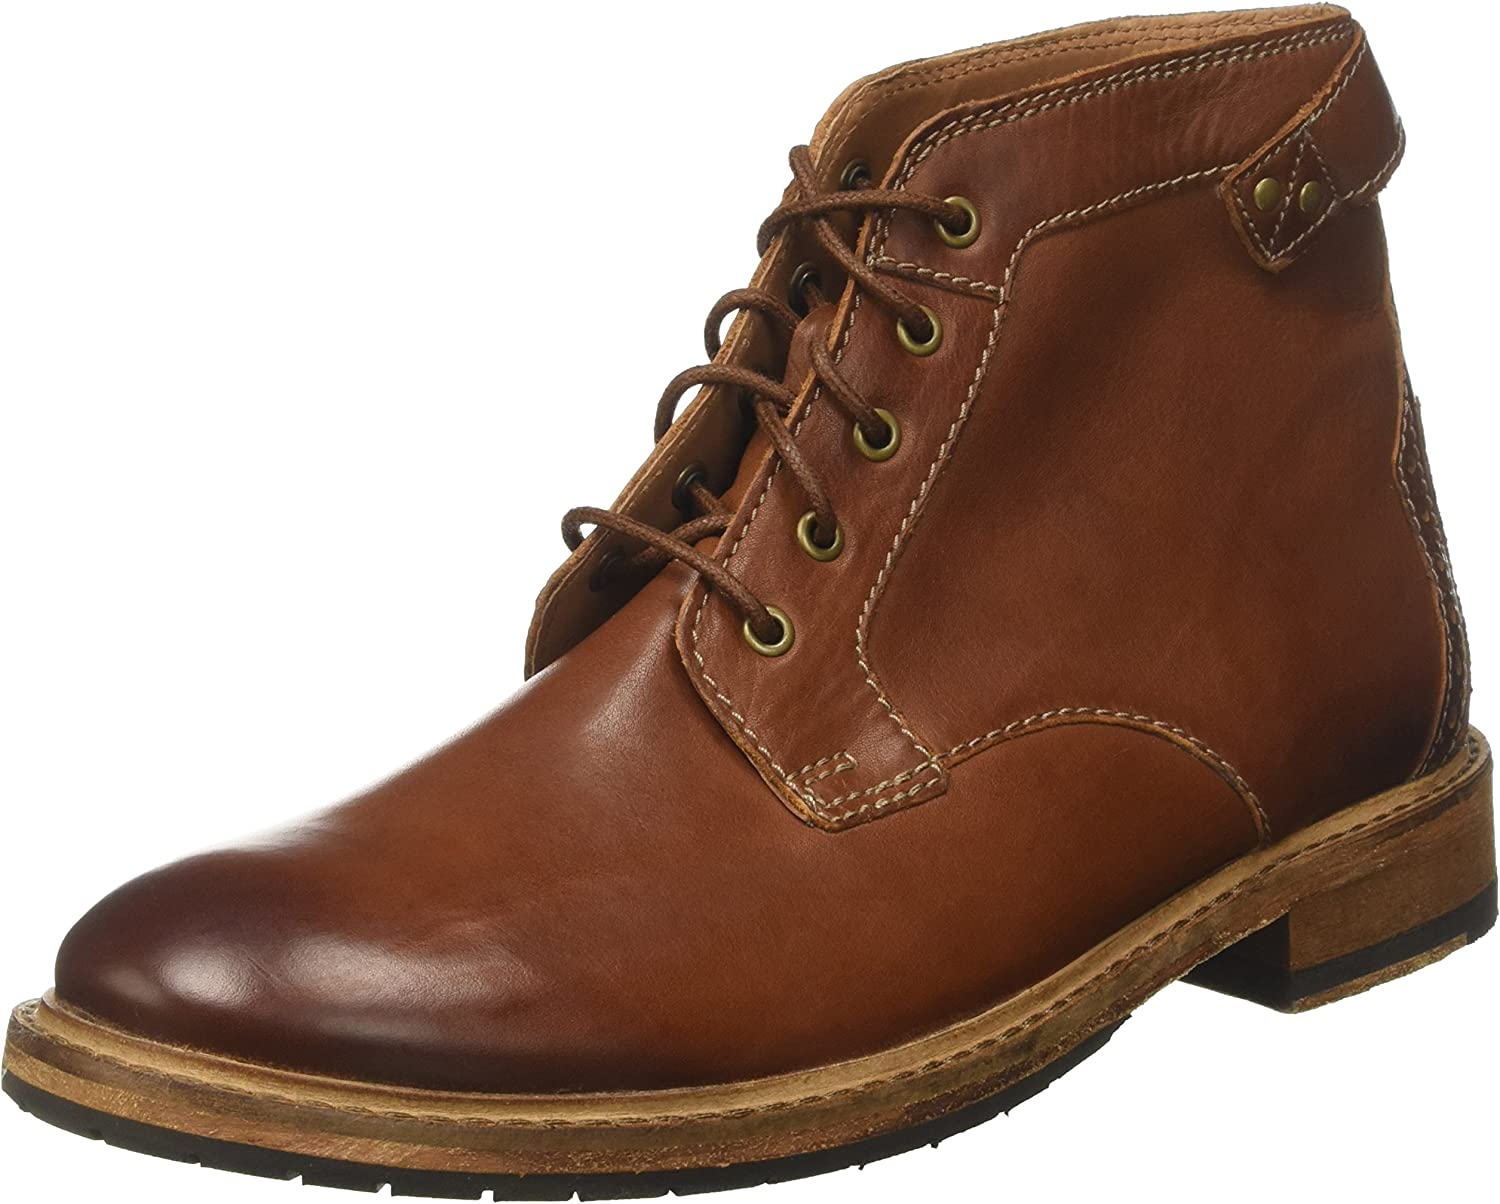 Clarks Clarkdale Bud, Botines para Hombre